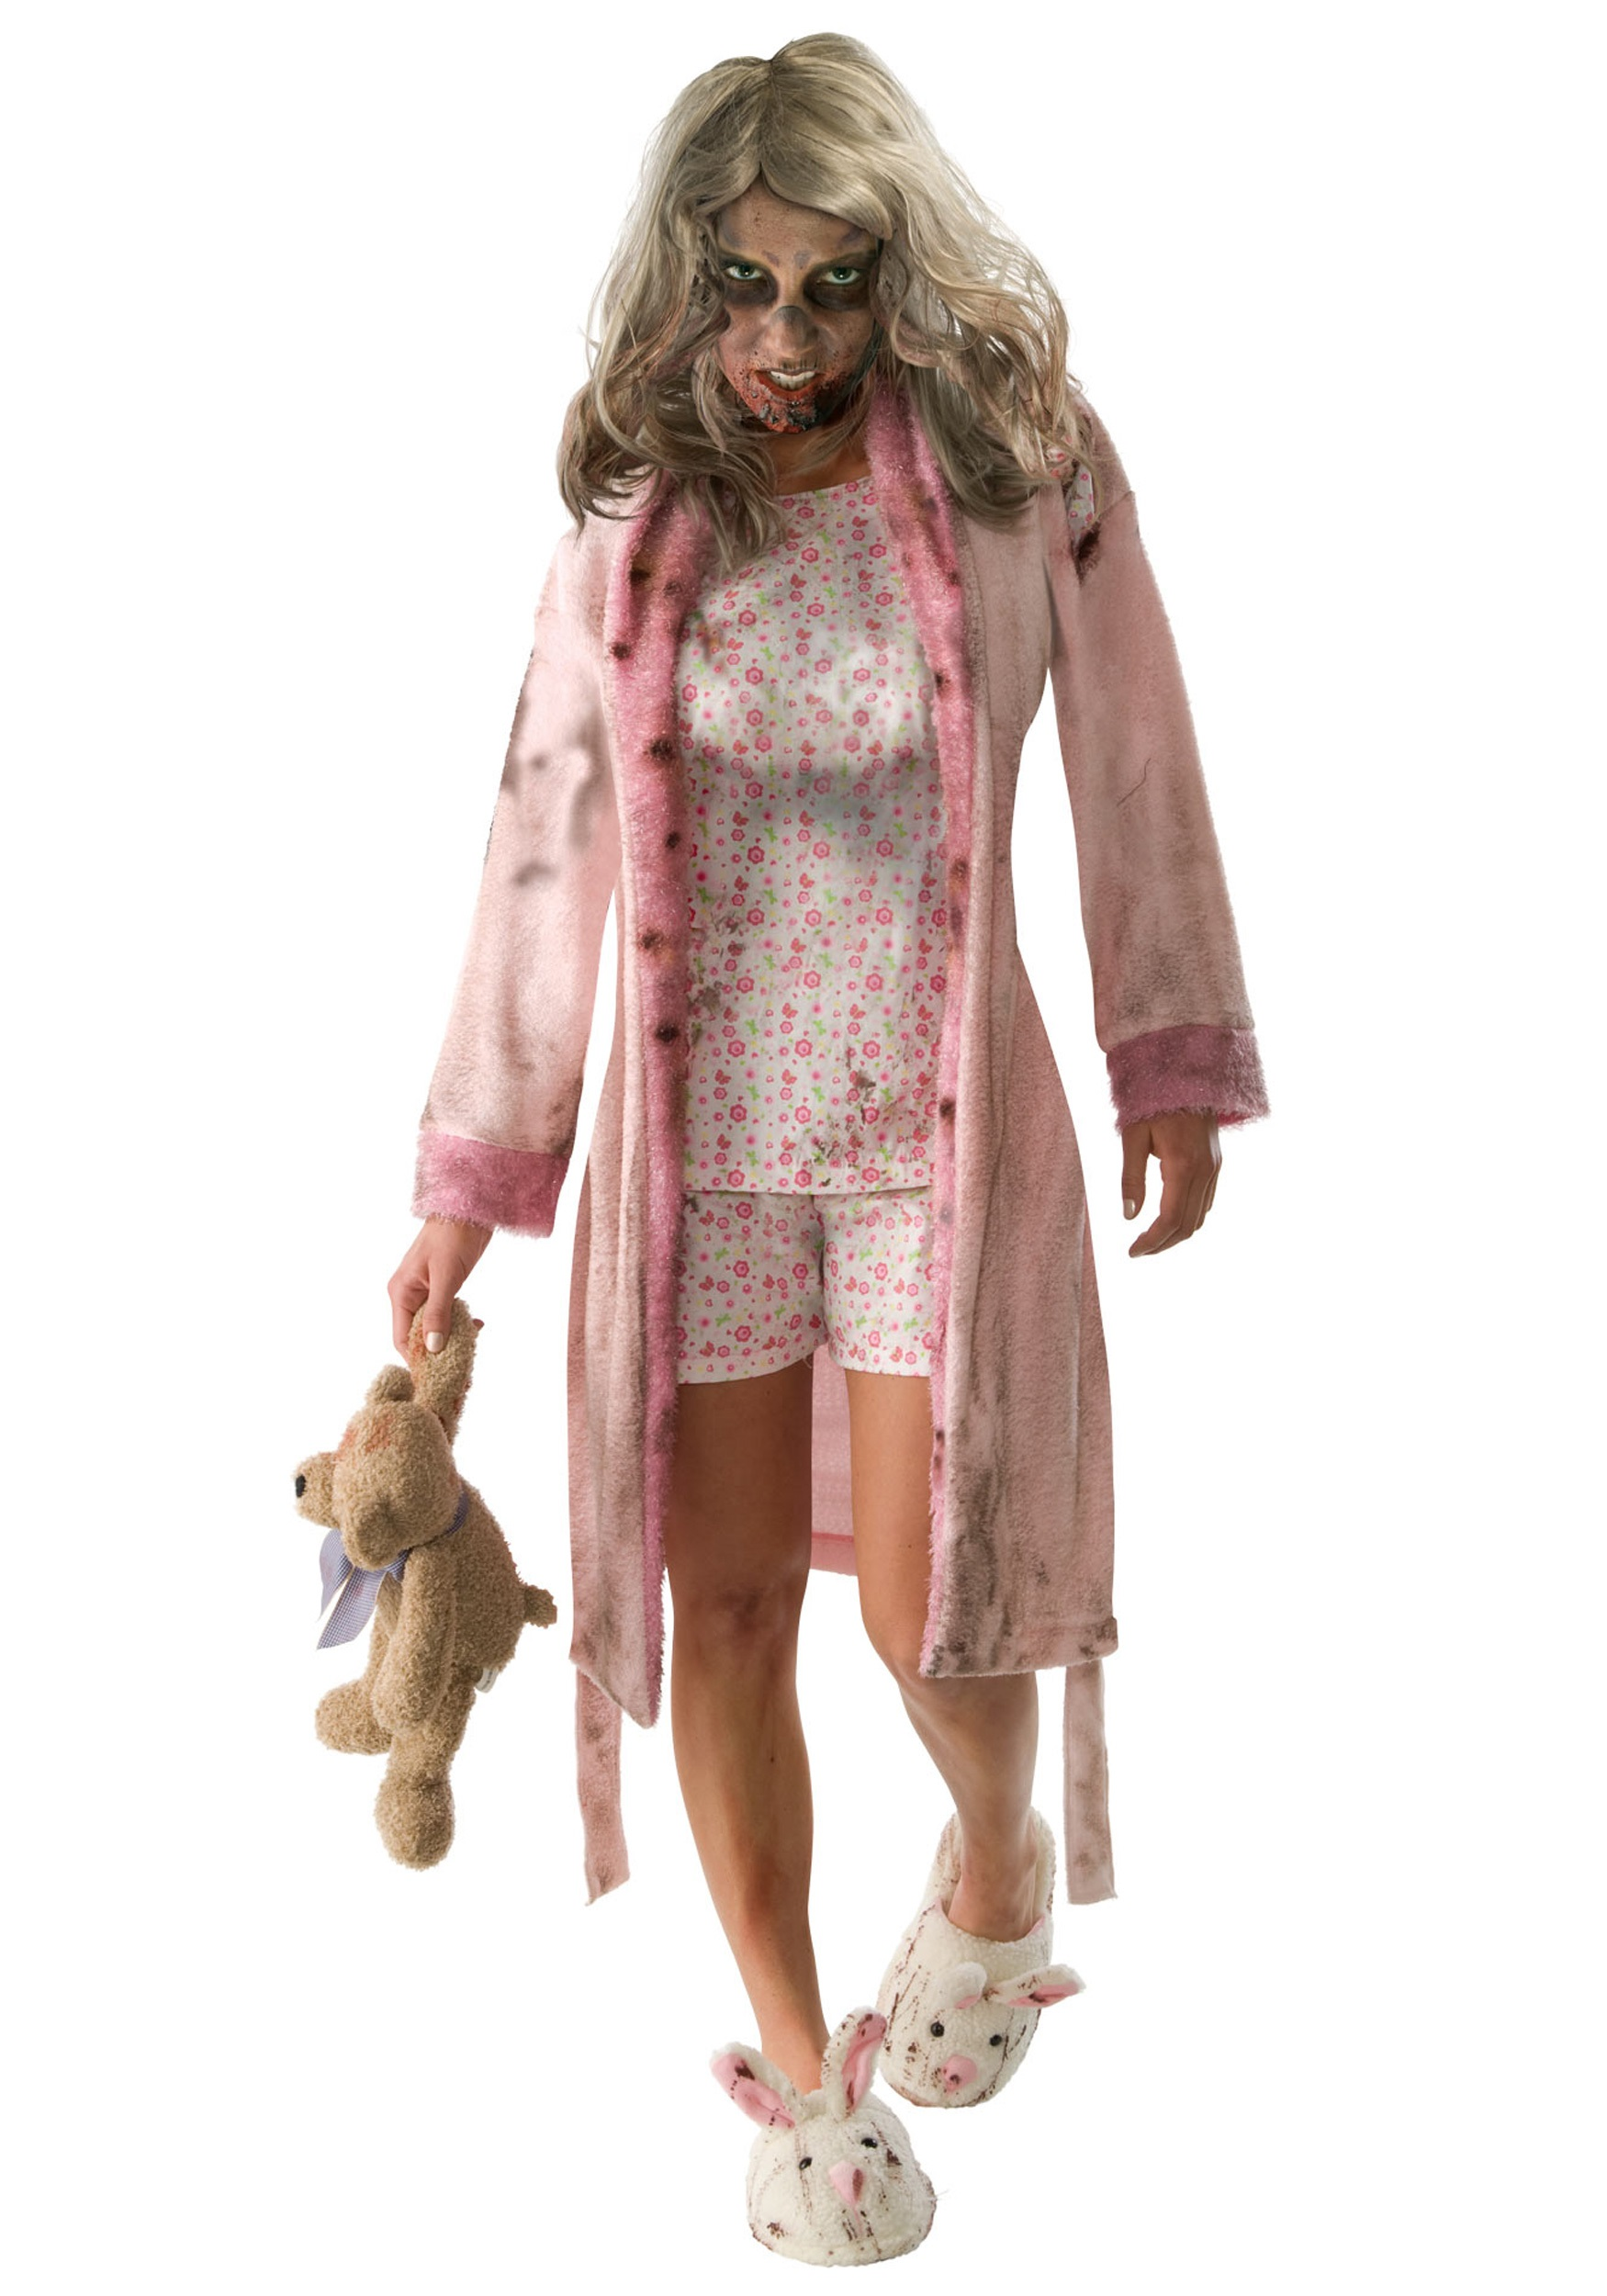 Halloween Zombie Costumes For Girls.Adult Little Girl Zombie Costume